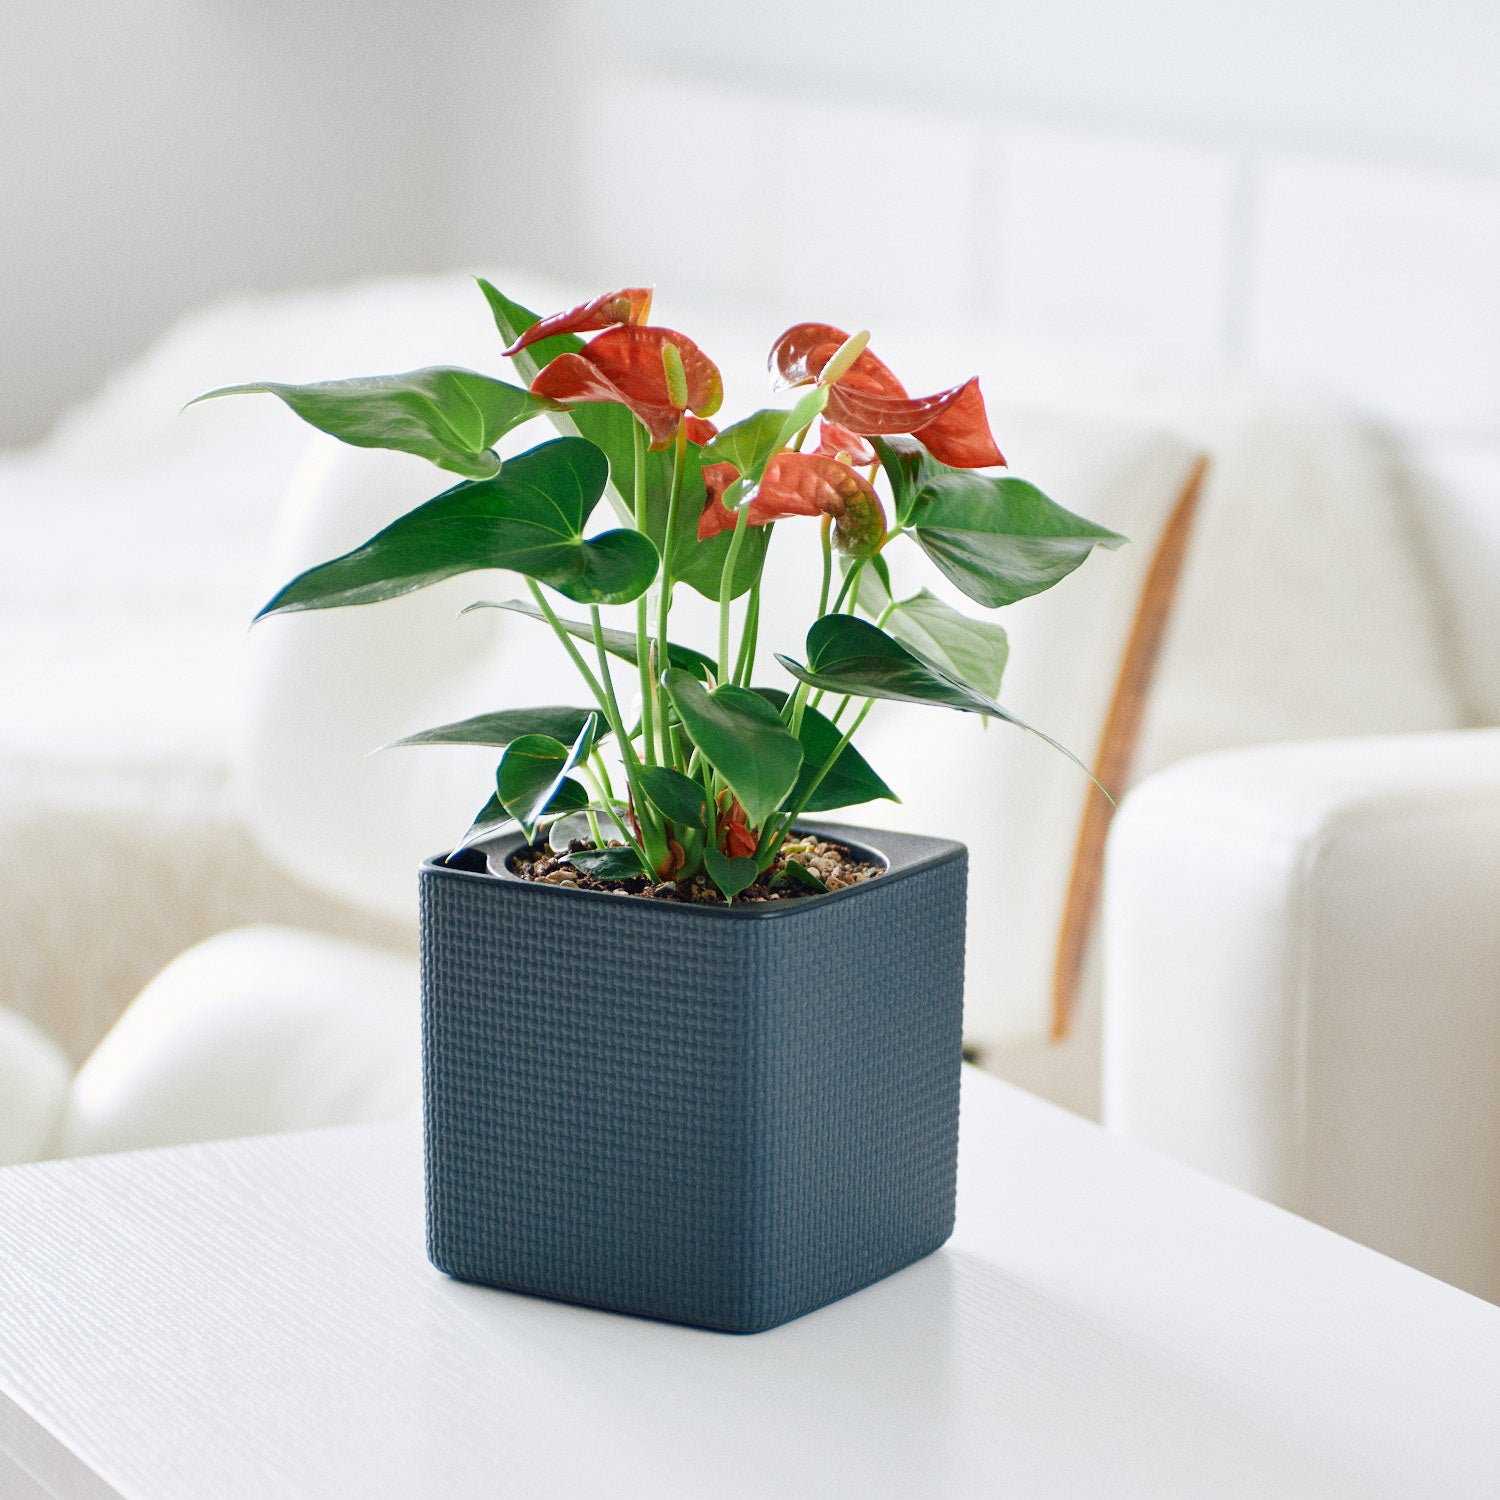 Anthurium Plant In Lechuza Cube 14 Slate Planter | My City Plants